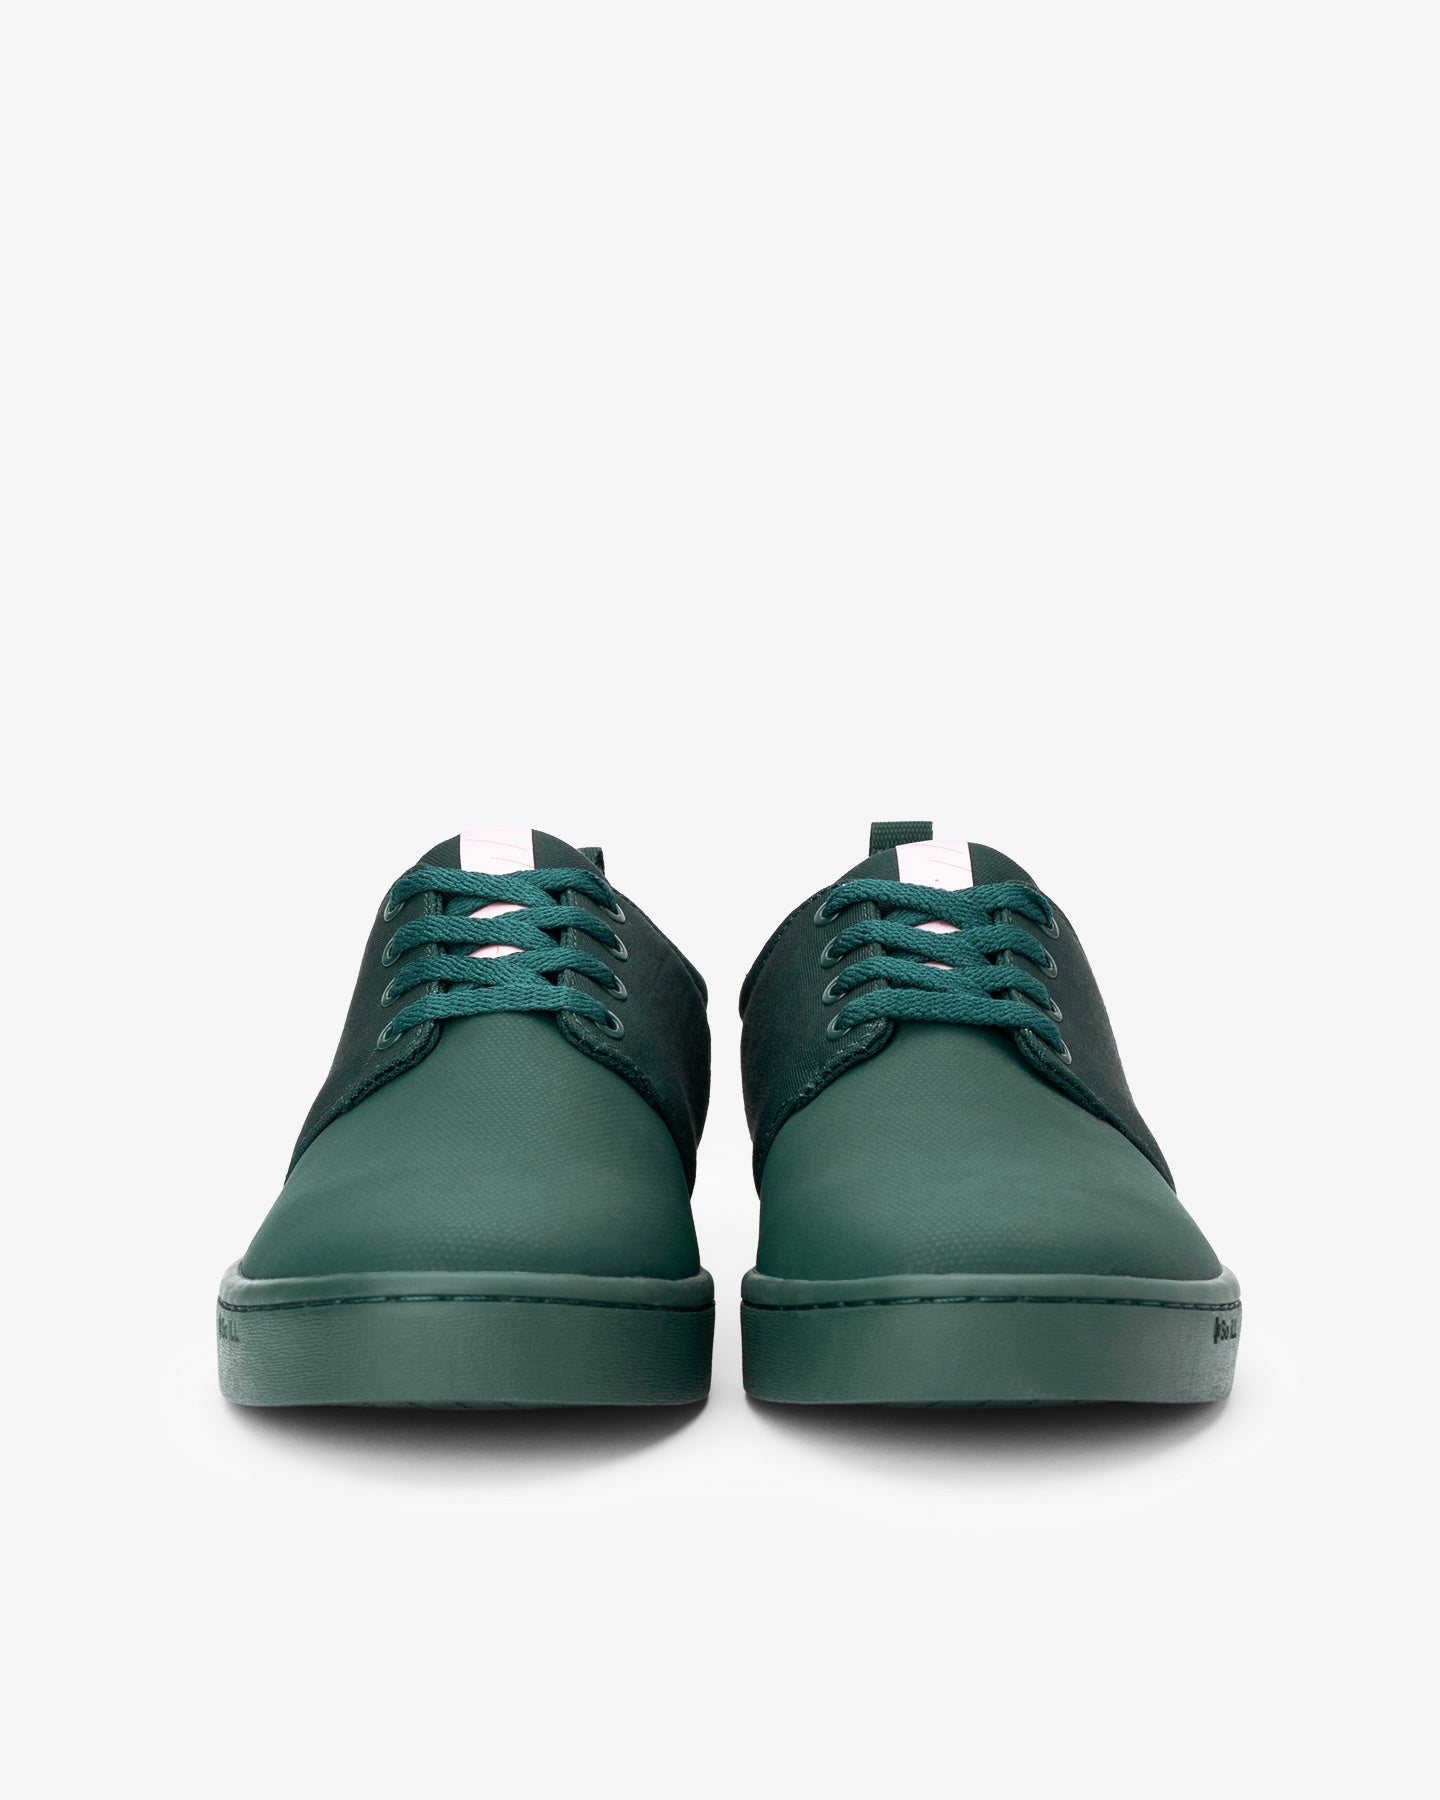 Pounamu Green Wino pair of shoes from the front